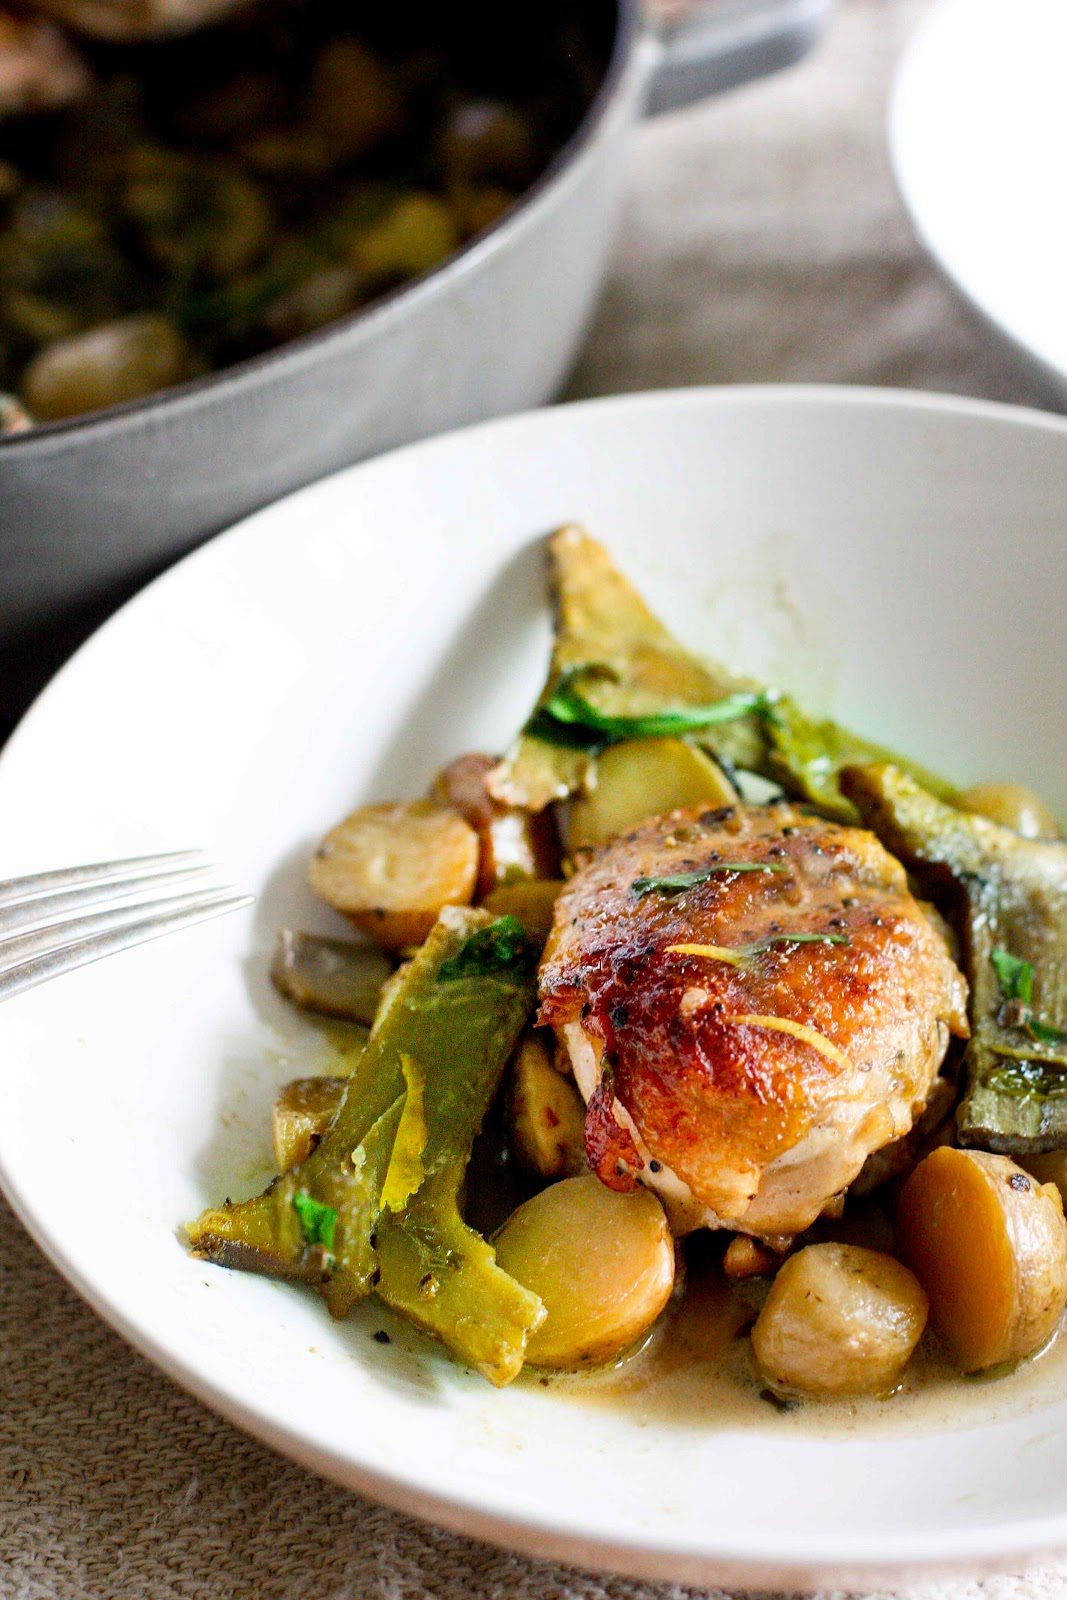 Braised Chicken with Artichokes, Leeks and Tarragon